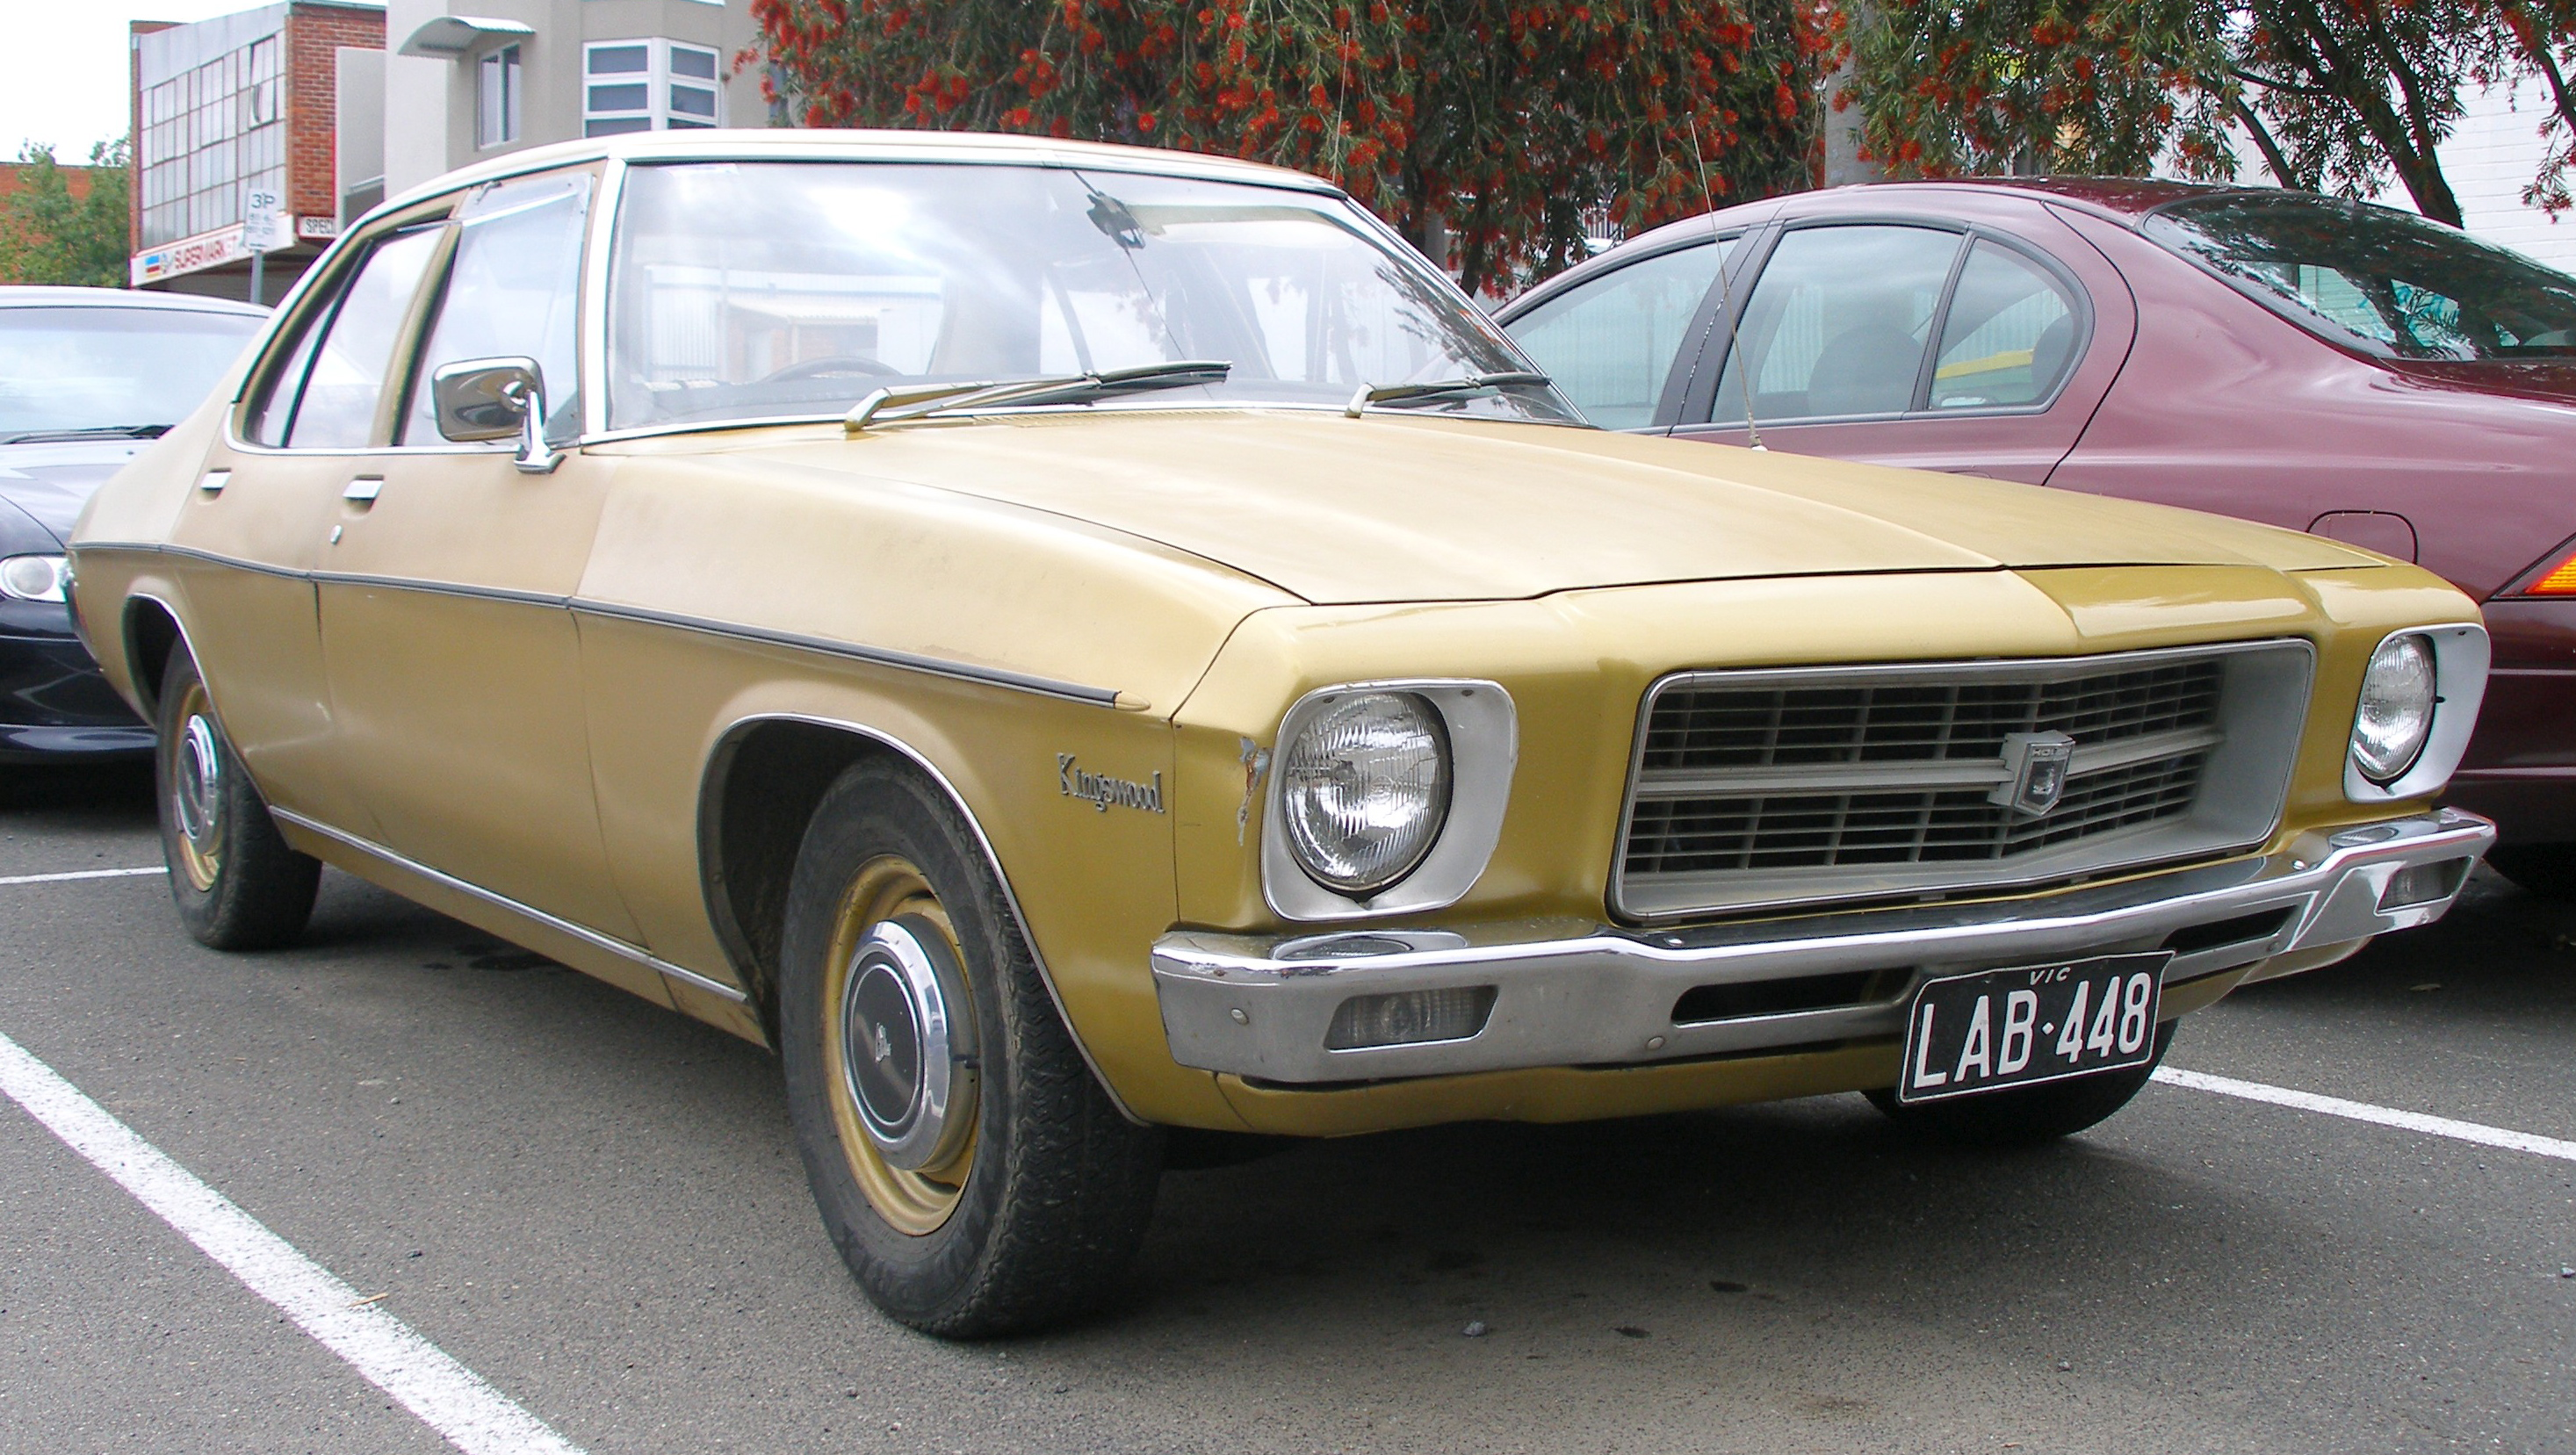 file 1971-1974 holden hq kingswood sedan 01 jpg